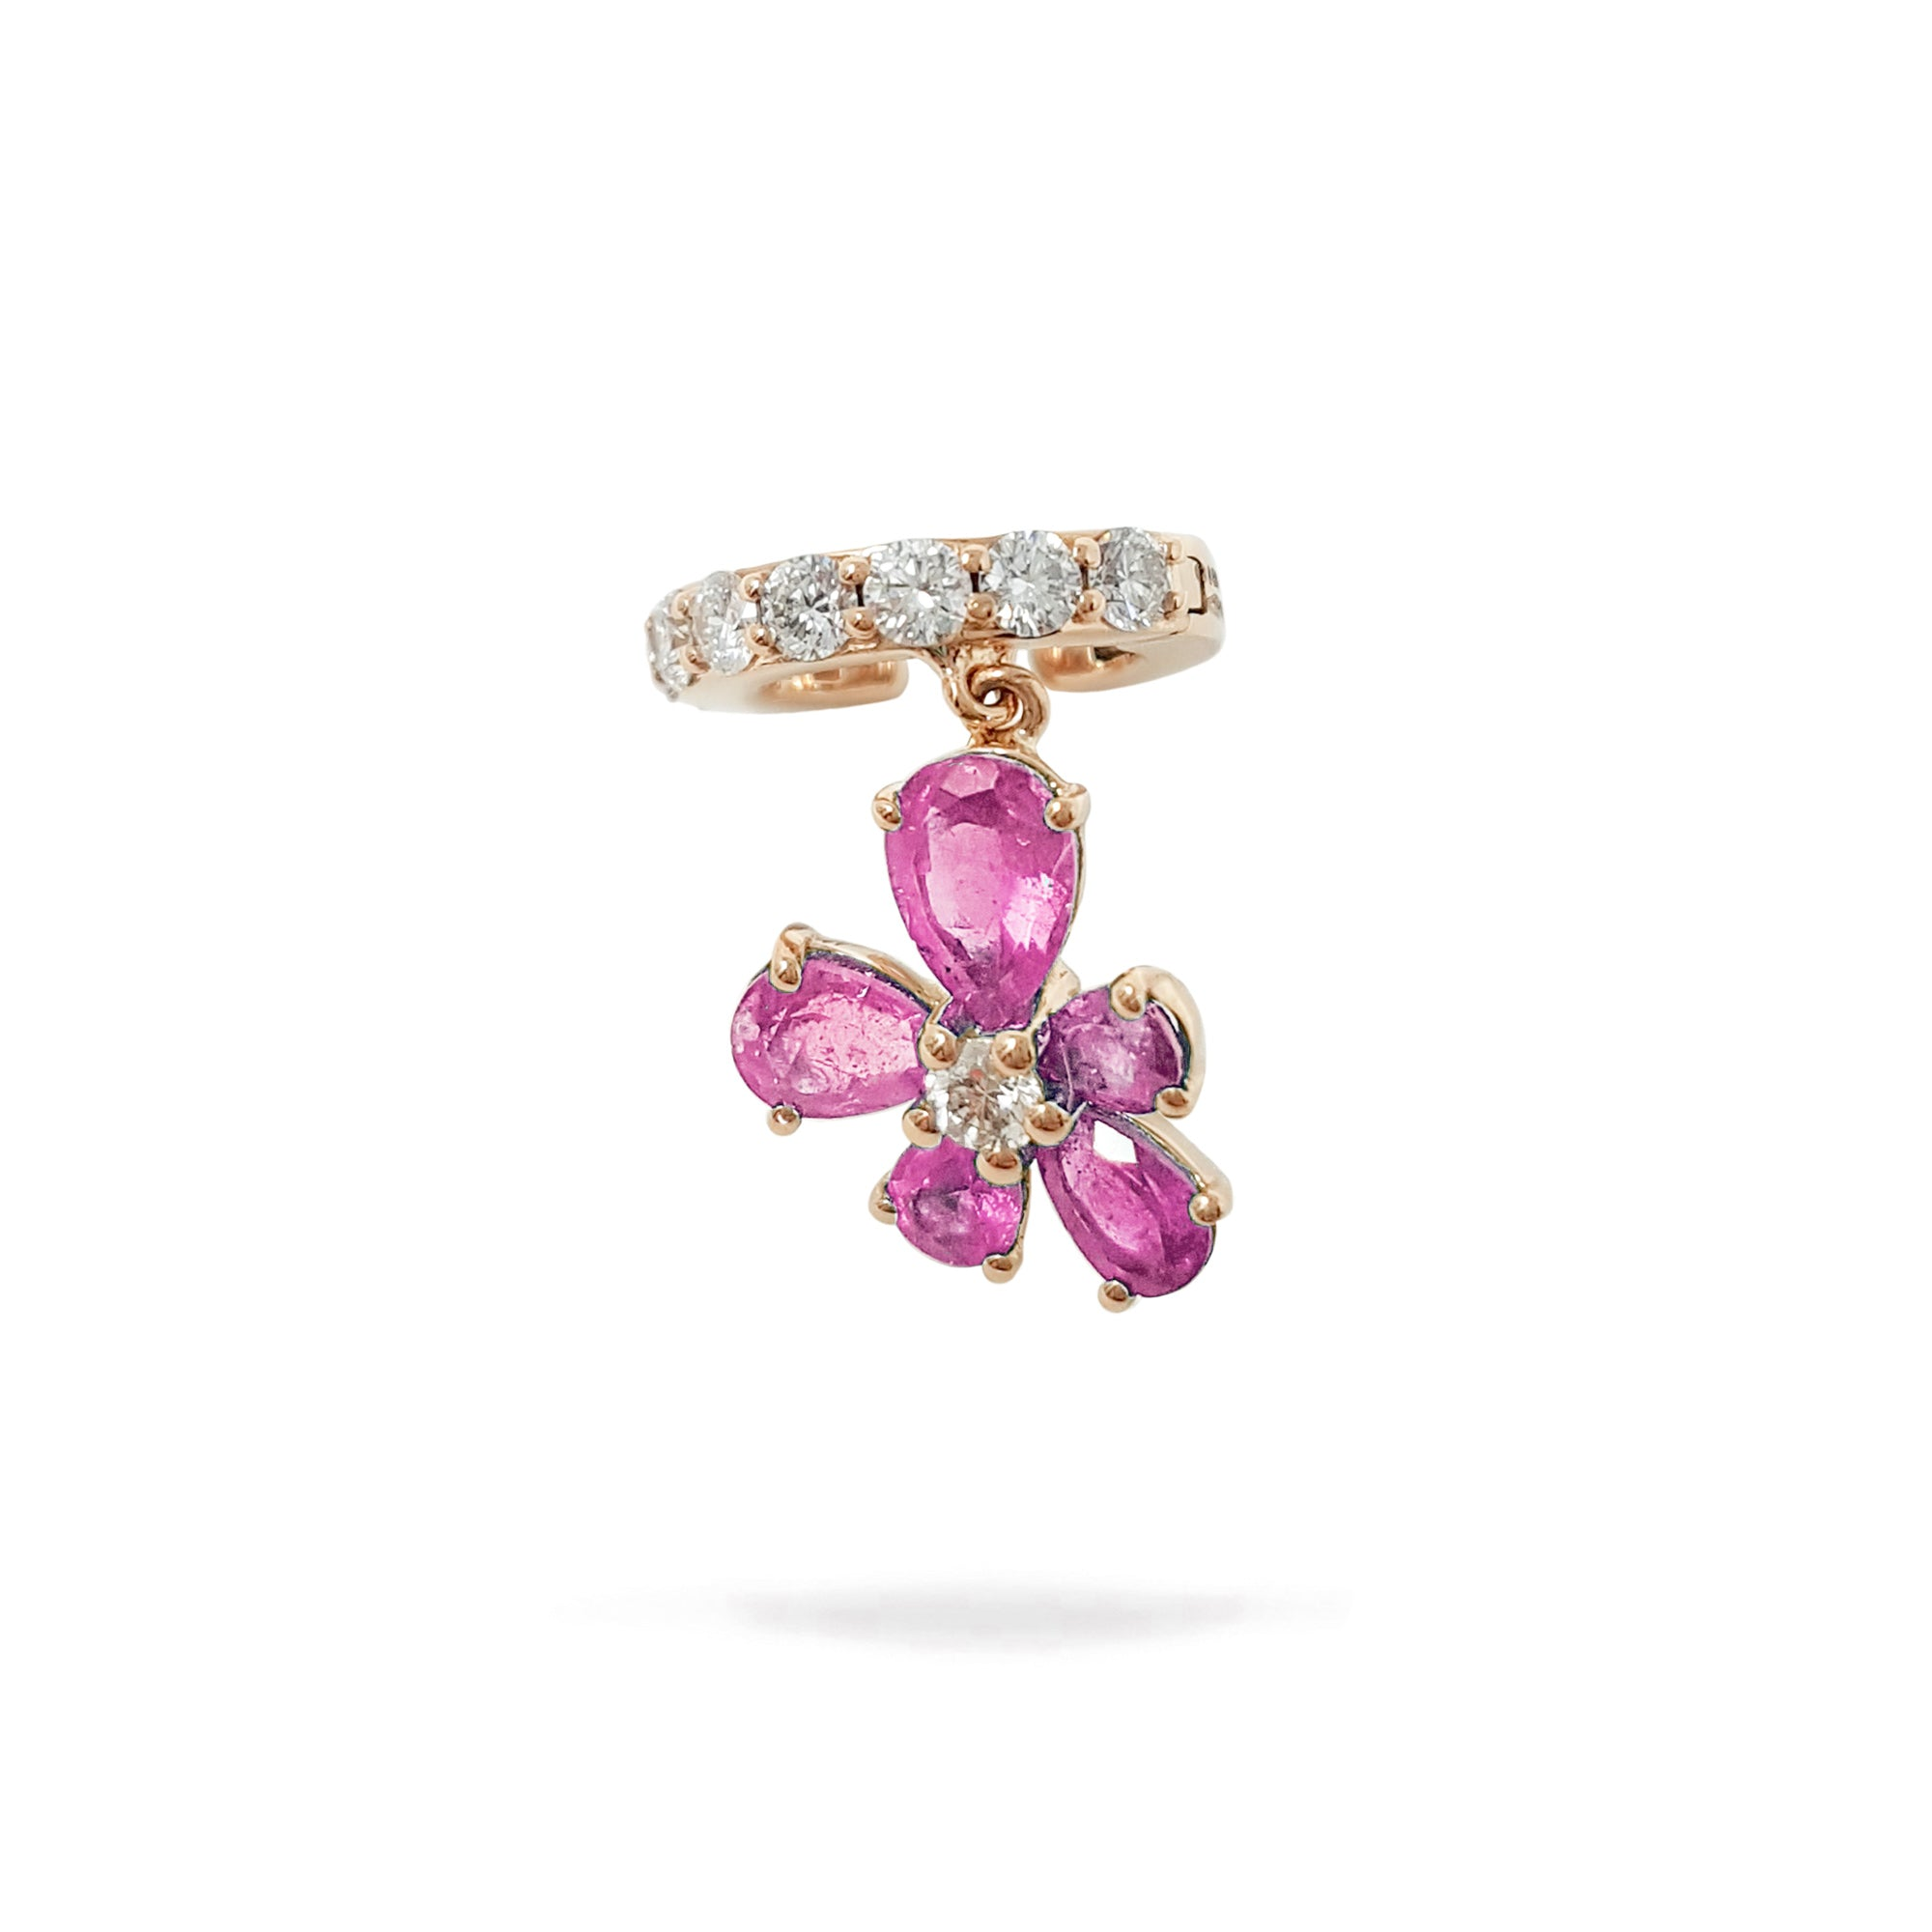 Prato Fiorito Rose Gold Mono Earring With Pink Sapphires Diamonds